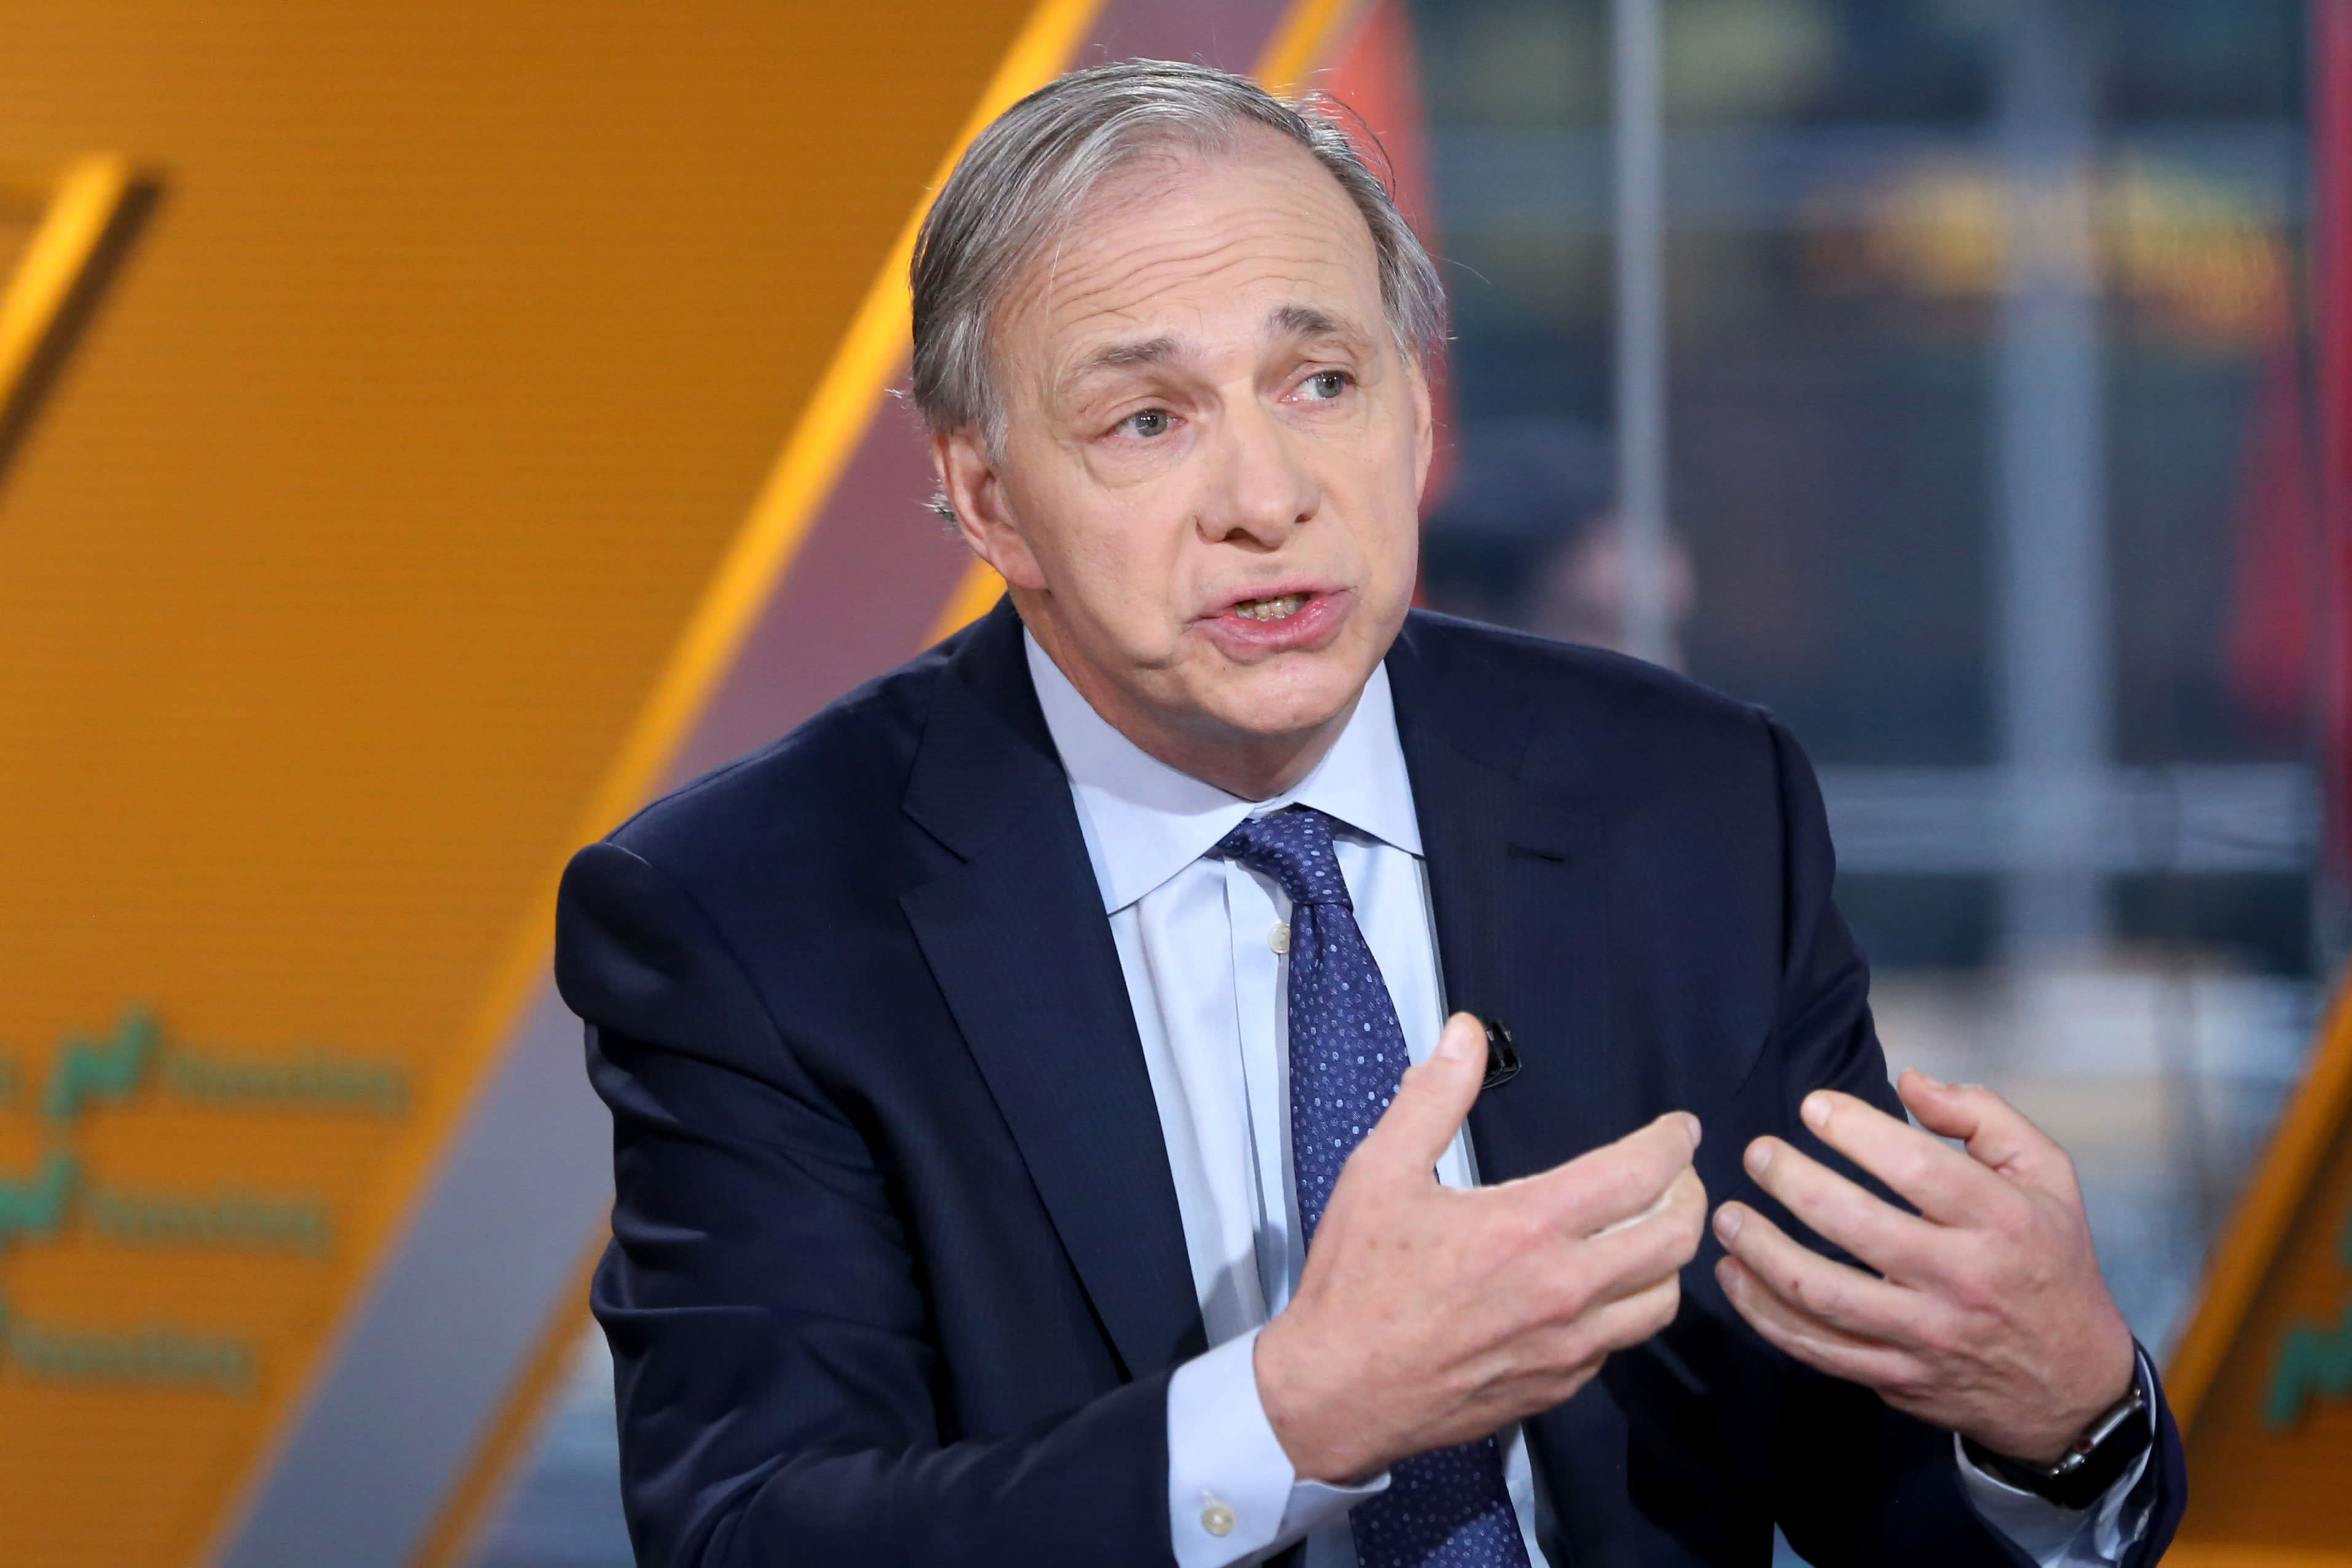 Ray Dalio warns of 'serious problems' and a bond 'blow-off' as a repeat of the late 1930s looms